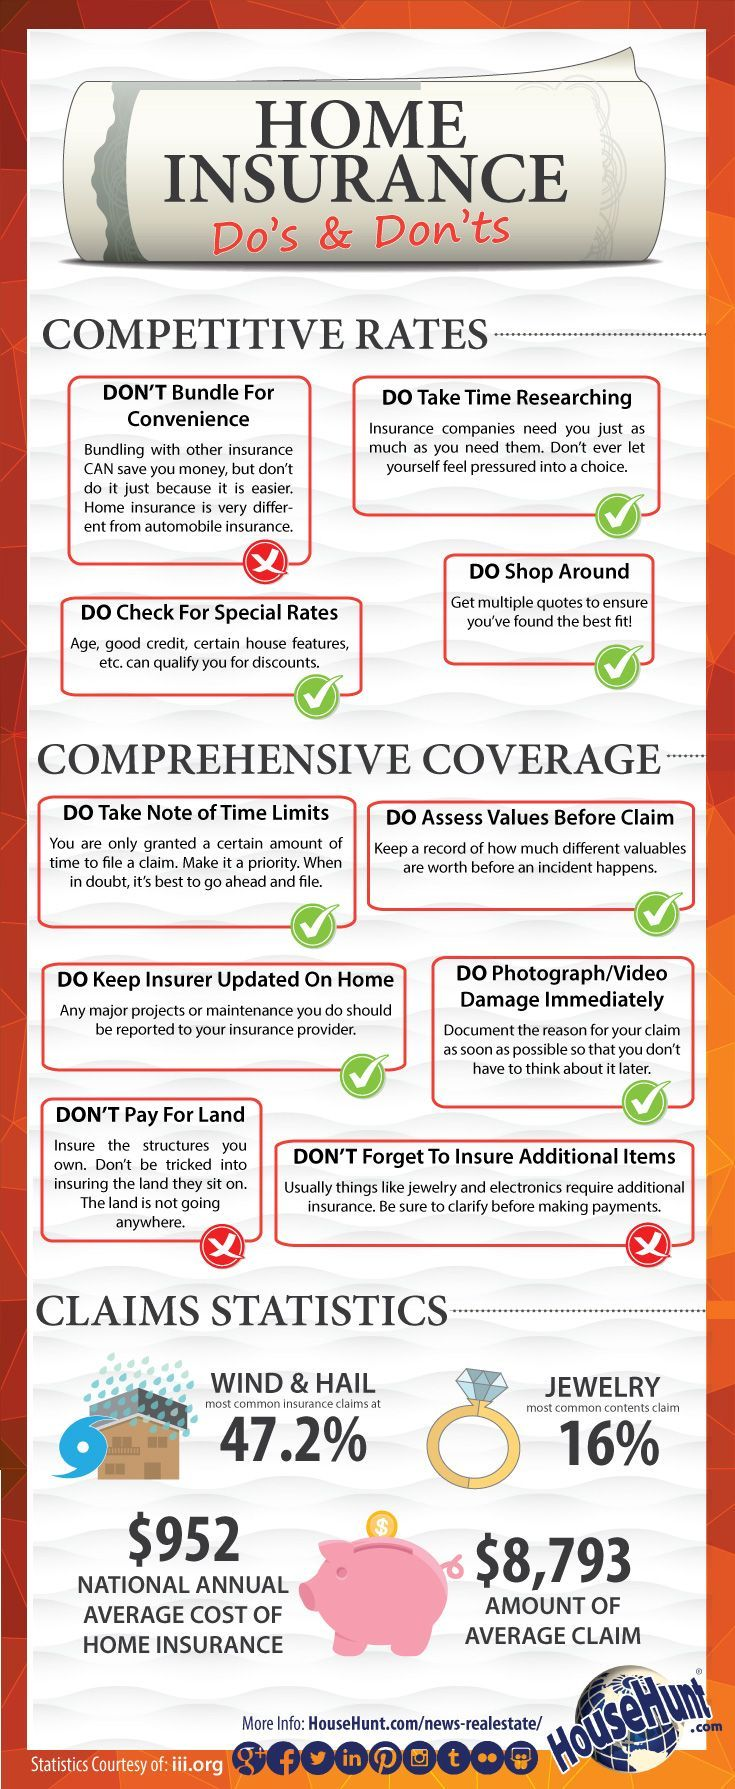 Home Insurance Quote Delectable Home Insurance Do's And Don'ts Infographic  Buy Health Insurance